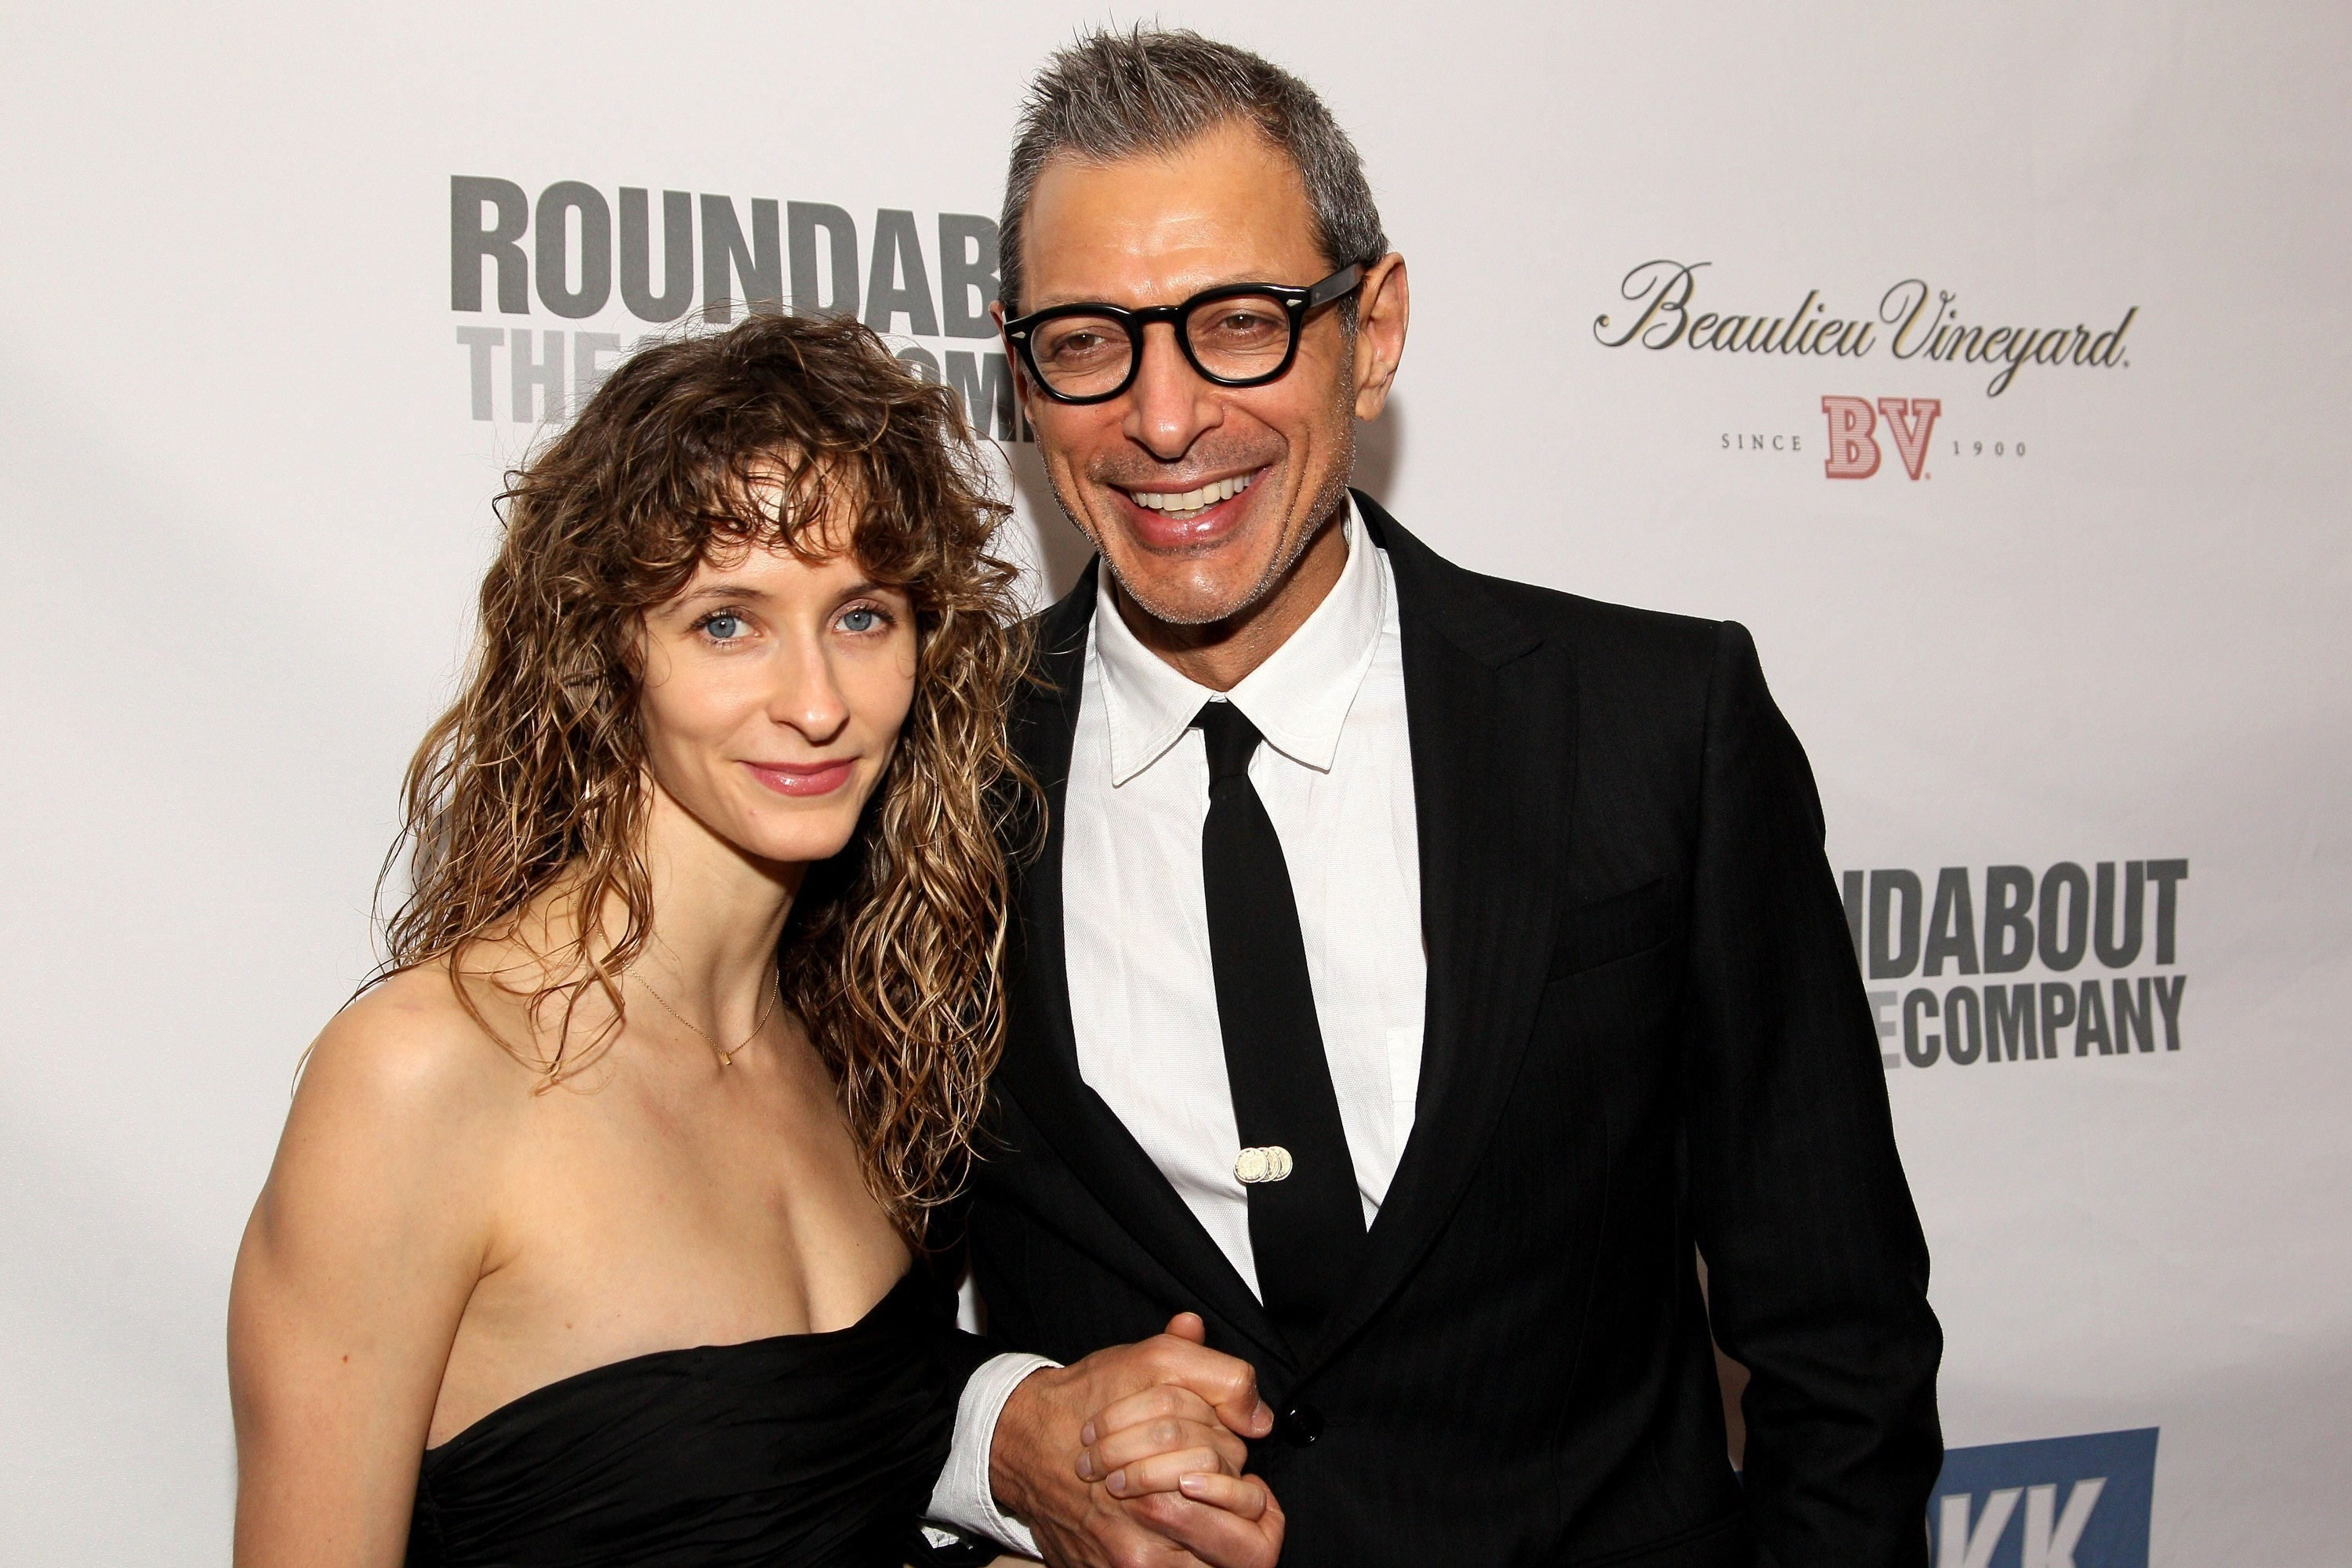 émilie livingstonemilie livingston and jeff goldblum, emilie livingston age, emilie livingston instagram, emilie livingston, emilie livingston wiki, emilie livingston olympics, emilie livingston gymnast, emilie livingston wikipedia, emilie livingston twitter, emilie livingston goldblum, emilie livingston engagement ring, émilie livingston, emilie livingston height, emilie livingston contortionist, emilie livingston imdb, emilie livingston pregnant, emilie livingston wedding, emilie livingston bio, emilie livingston net worth, emilie livingston jewish